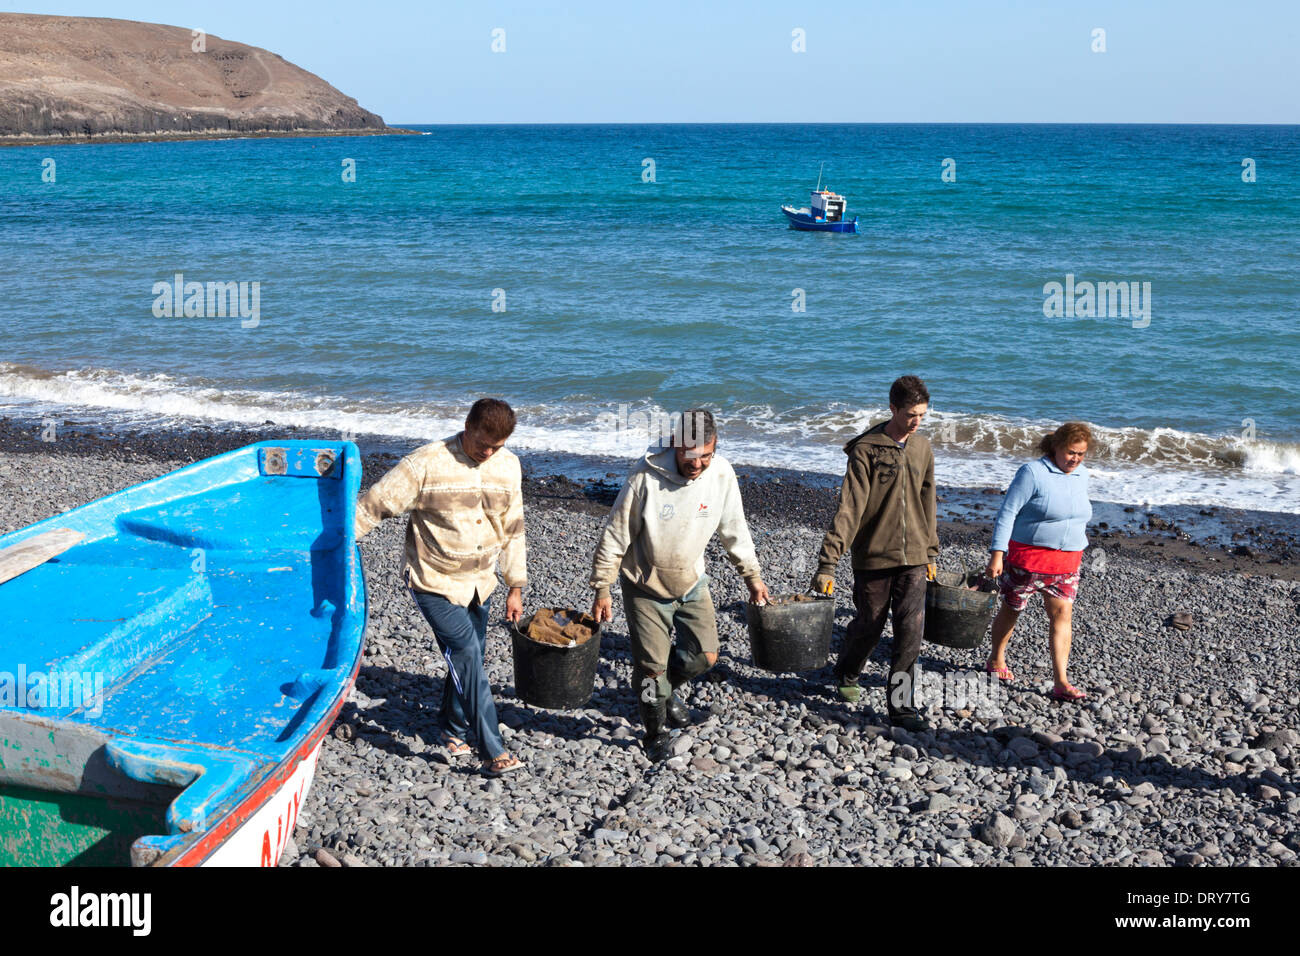 Fishermen landing their catch of fish at the seaside village of Pozo Negro, Fuerteventura, Canary Islands, Spain - Stock Image